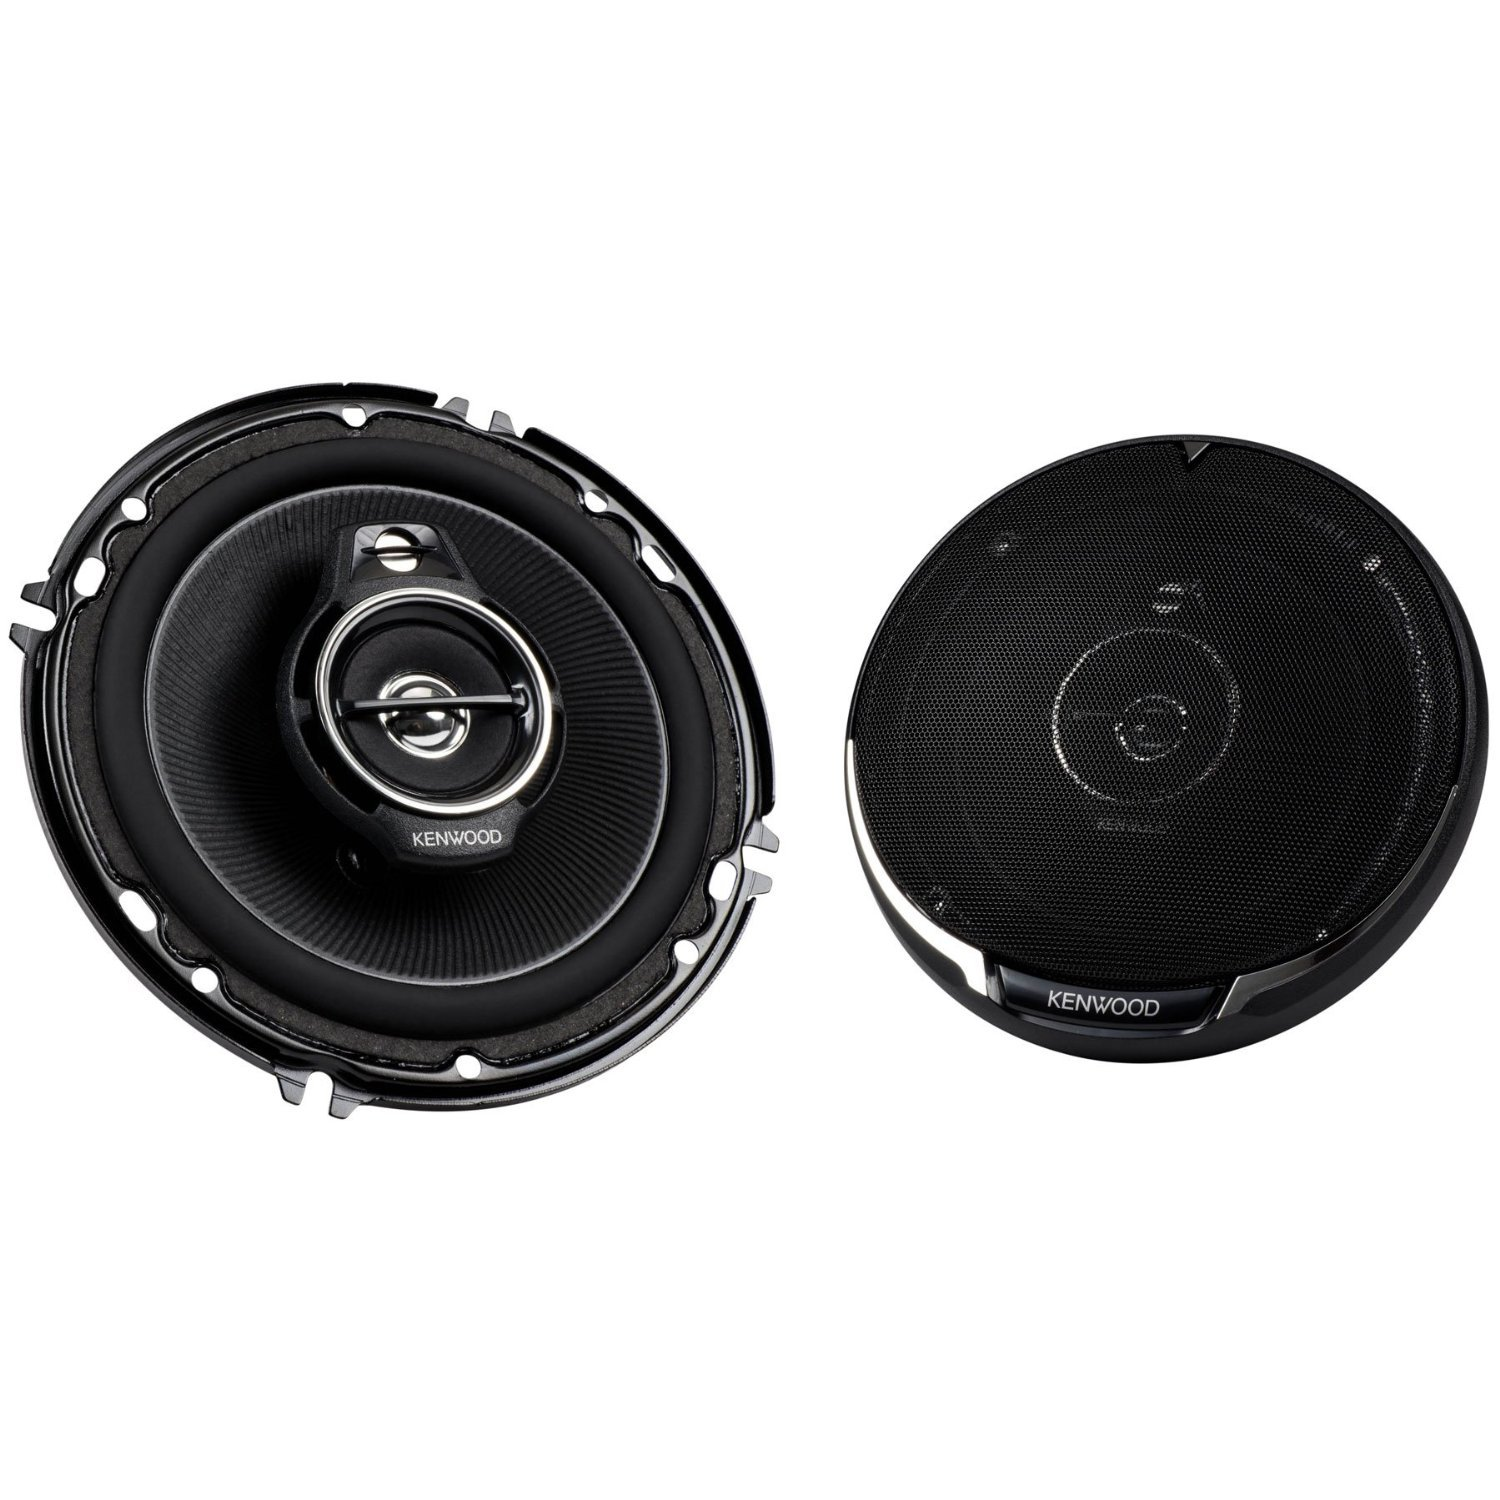 "Kenwood KFC-1695PS 150W 6.5"" 3-Way Performance Series Flush Mount Coaxial Speakers with Paper Cone Tweeters, Set of 2"